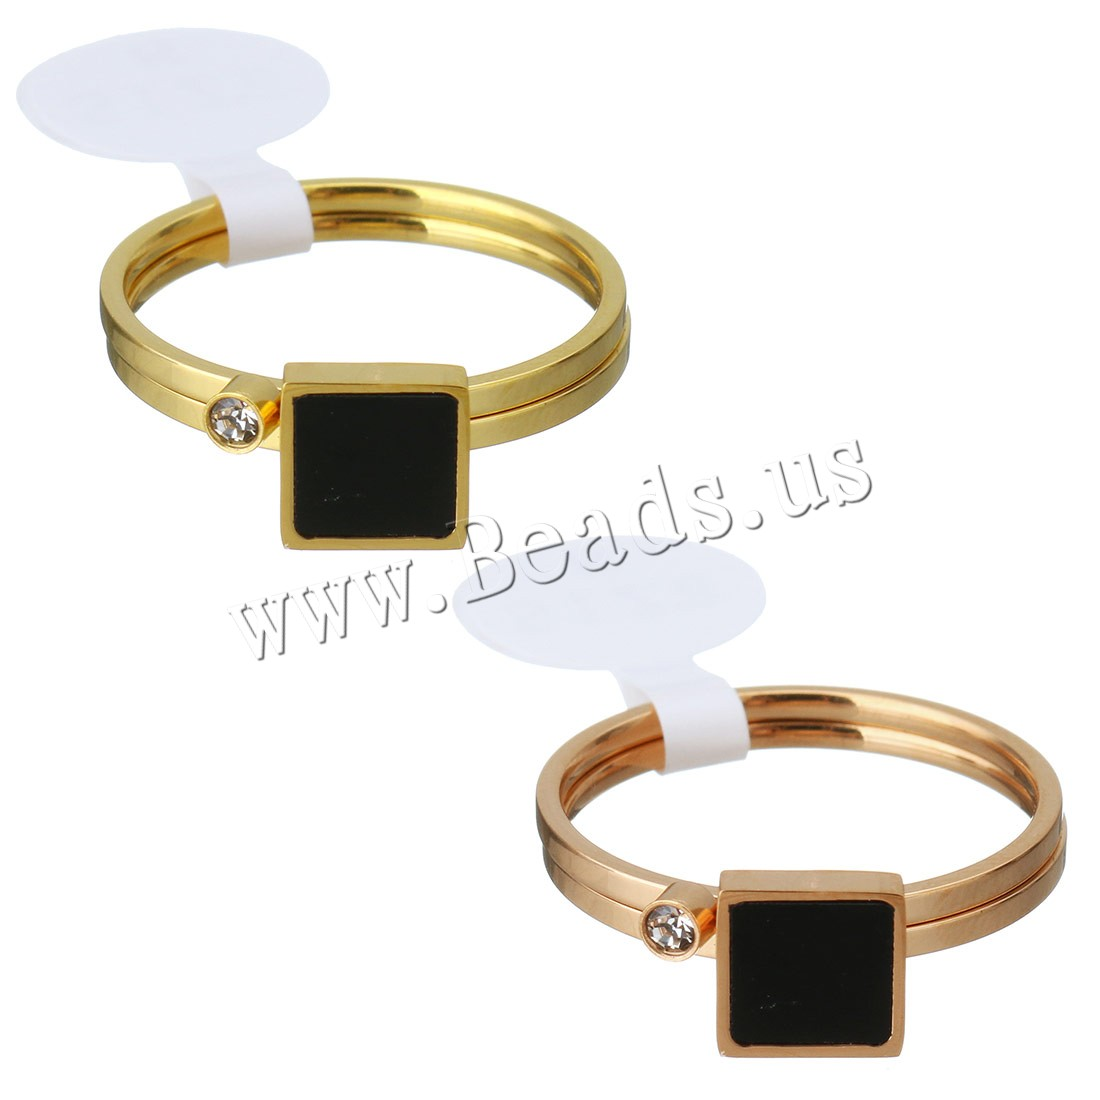 Buy Rhinestone Stainless Steel Finger Ring Resin plated different size choice & woman & rhinestone colors choice 7mm 2.5mm 2PCs/Set Sold Set